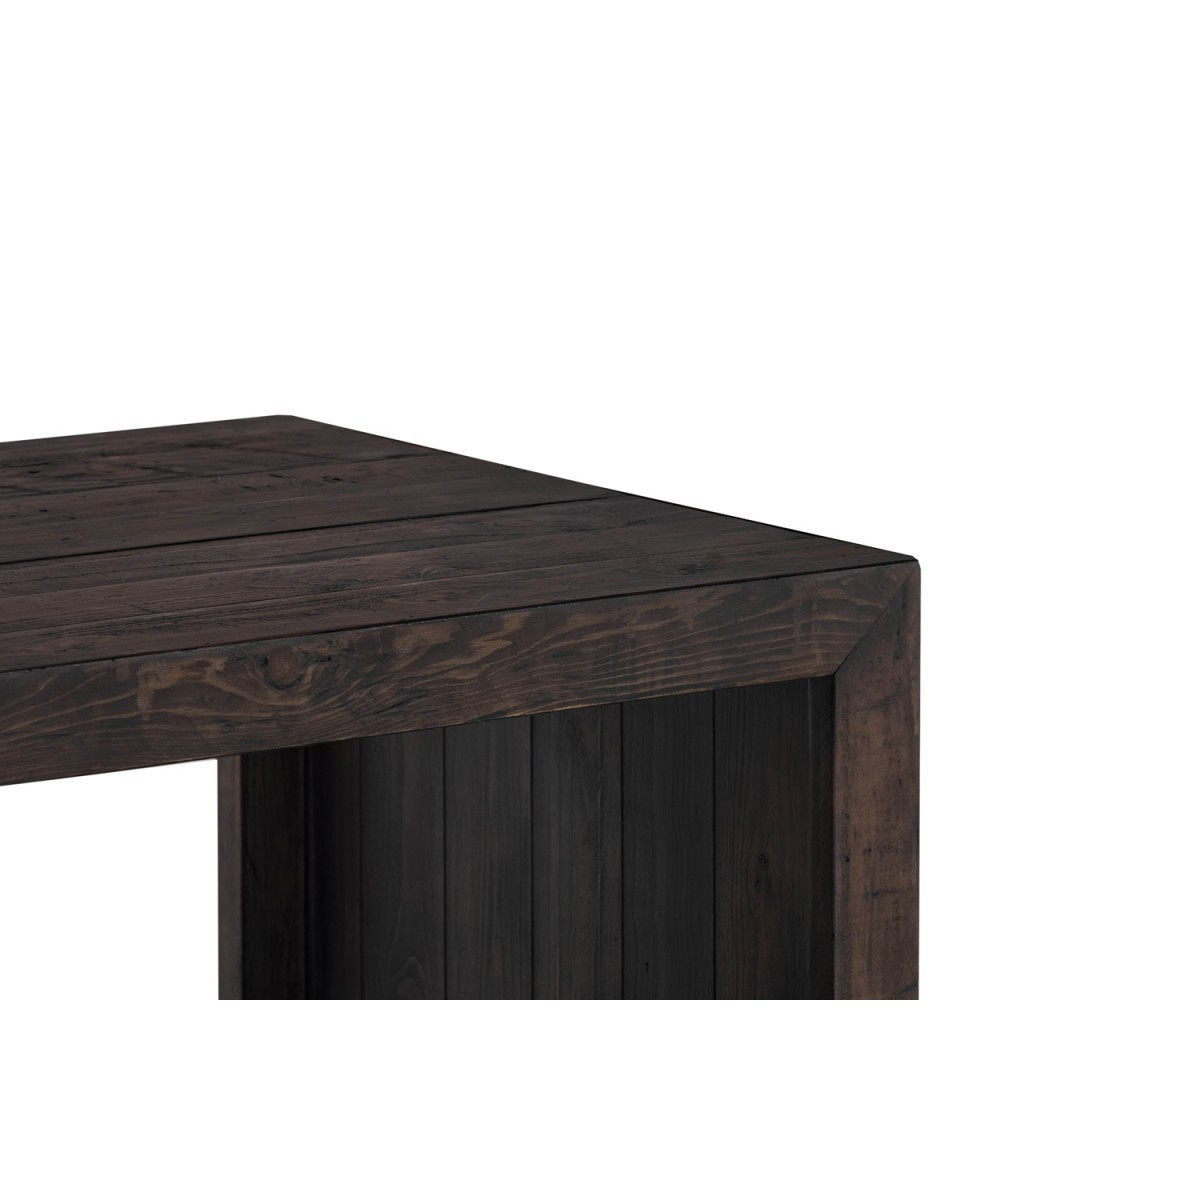 Table de chevet Bois Marron 60x60x55cm